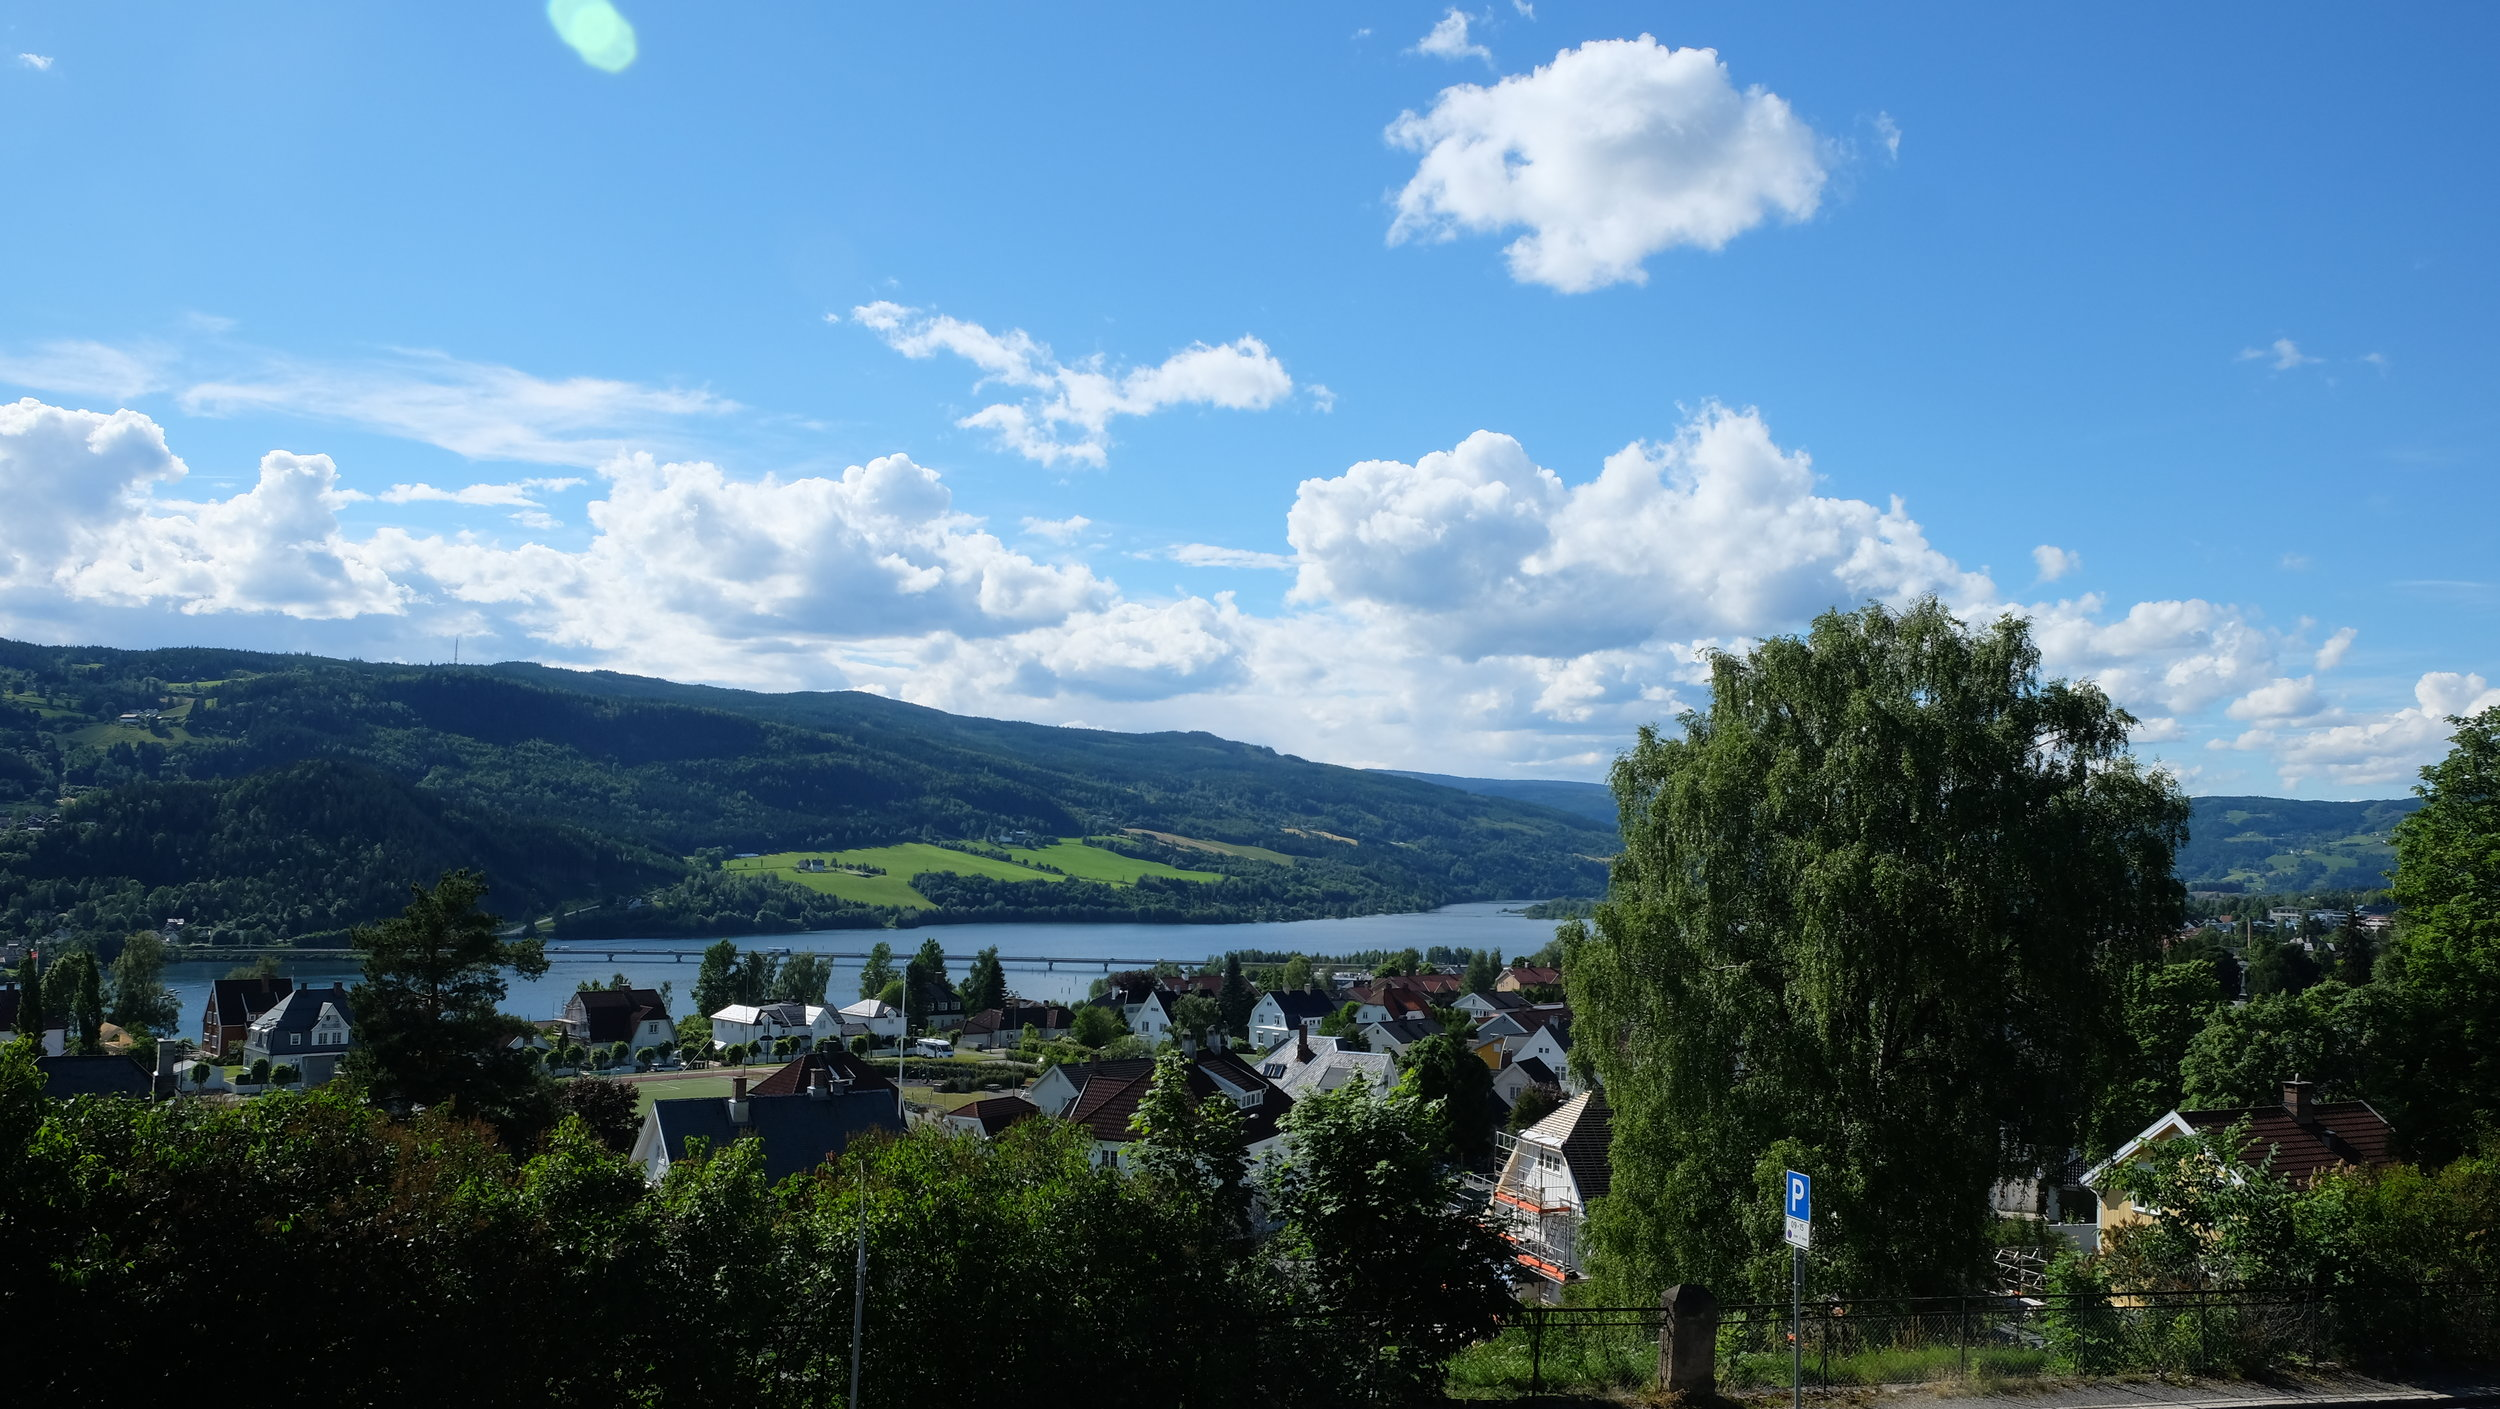 A view of Lillehammer's scenery